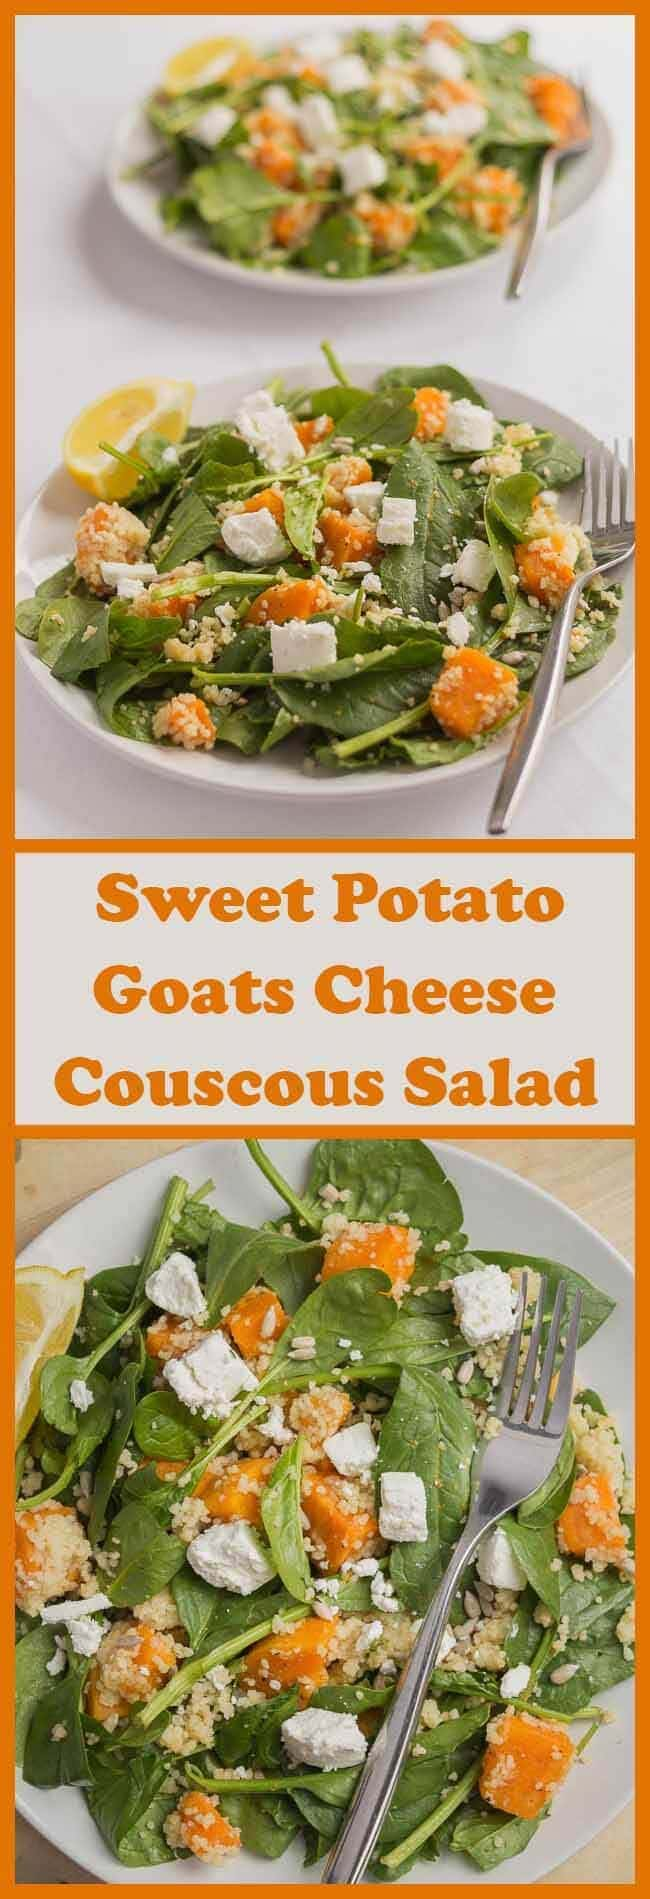 This sweet potato goats cheese and couscous salad is delicious. It's packed with protein, dietary fibre and makes a great quick healthy lunch. The really light olive oil and lemon juice marinade gives it a perfectly balanced light and fresh